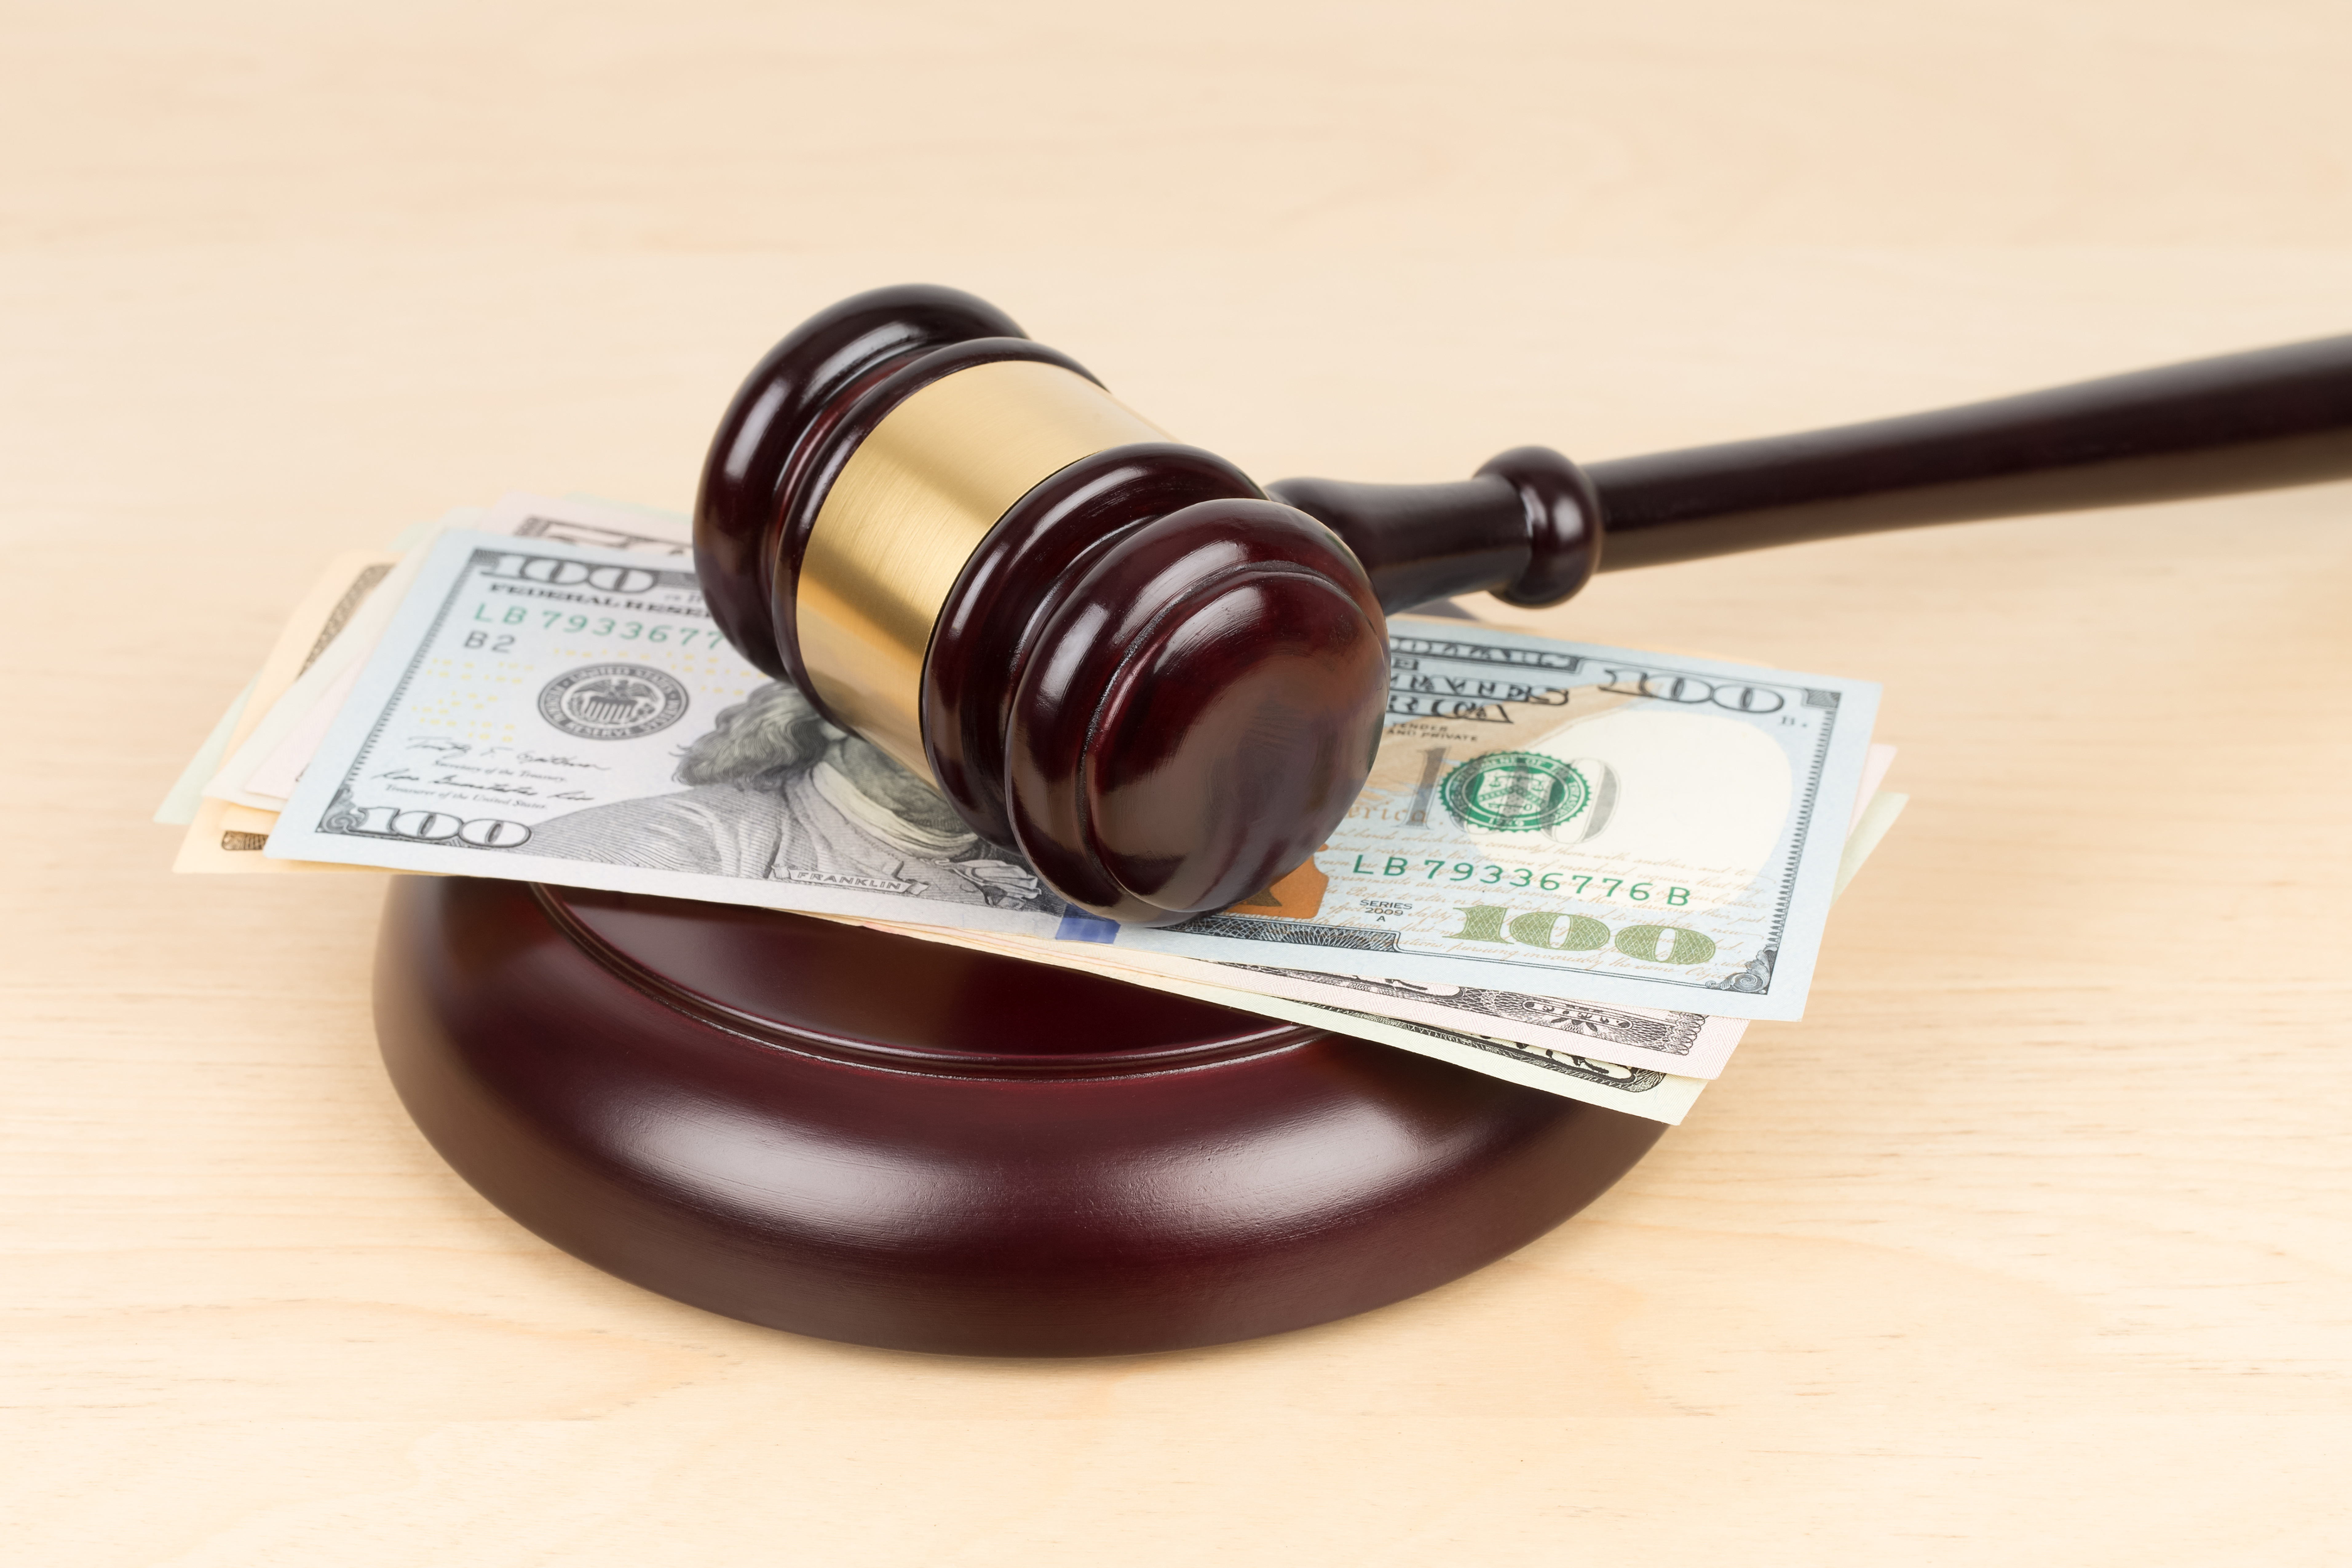 Judge wooden gavel with dollar money banknote